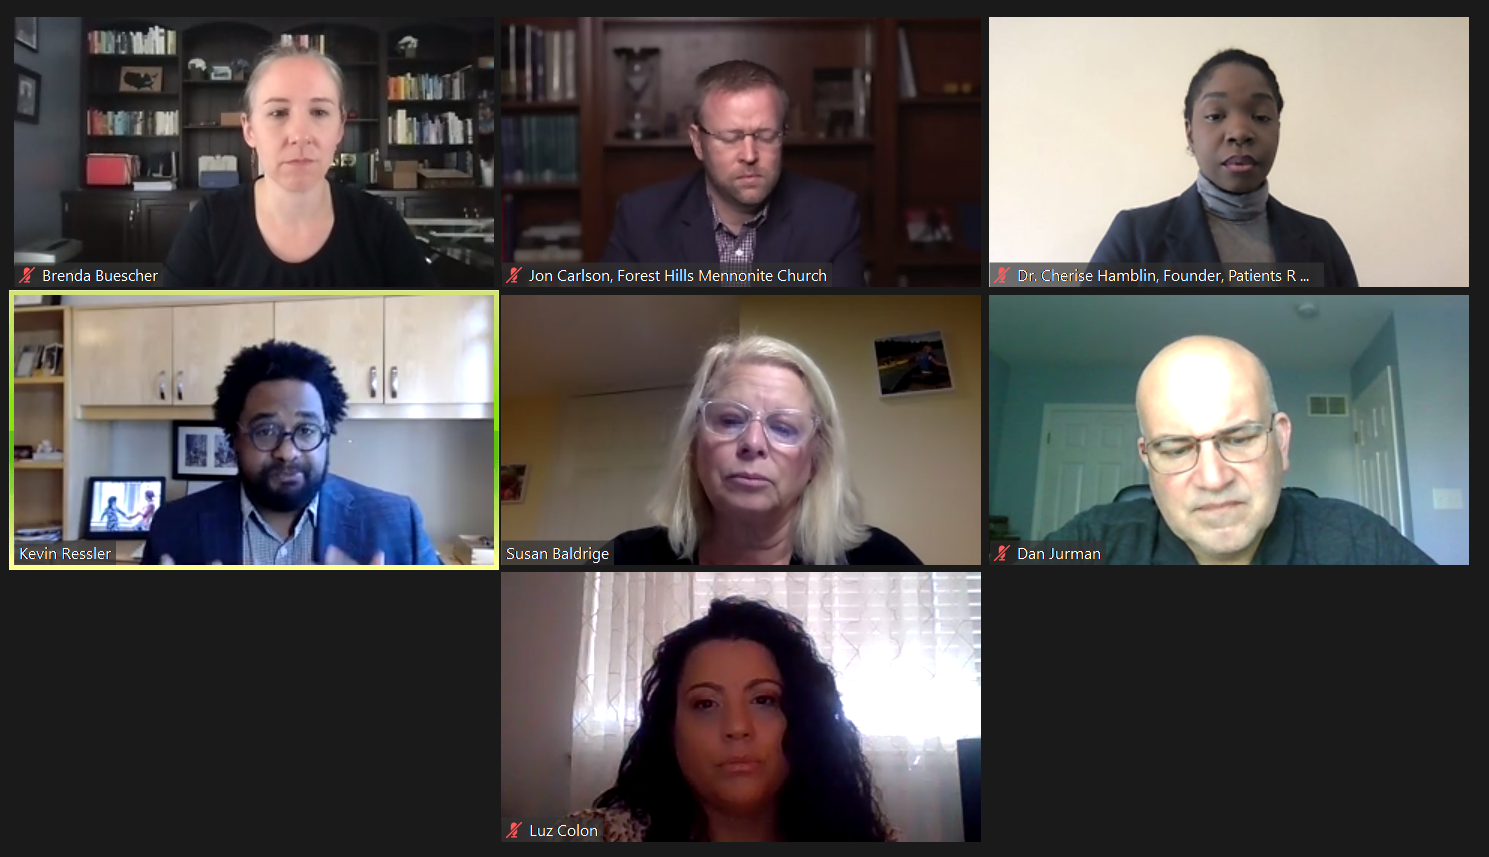 Panelists participate in an online forum on vaccine equity sponsored by the United Way of Lancaster County on Friday, May 14, 2021. Top: Brenda Buescher, Jon Carlson, Dr. Cherise Hamblin; Middle: Kevin Ressler, Susan Baldrige (moderator), Dan Jurman; Bottom: Luz Colon.